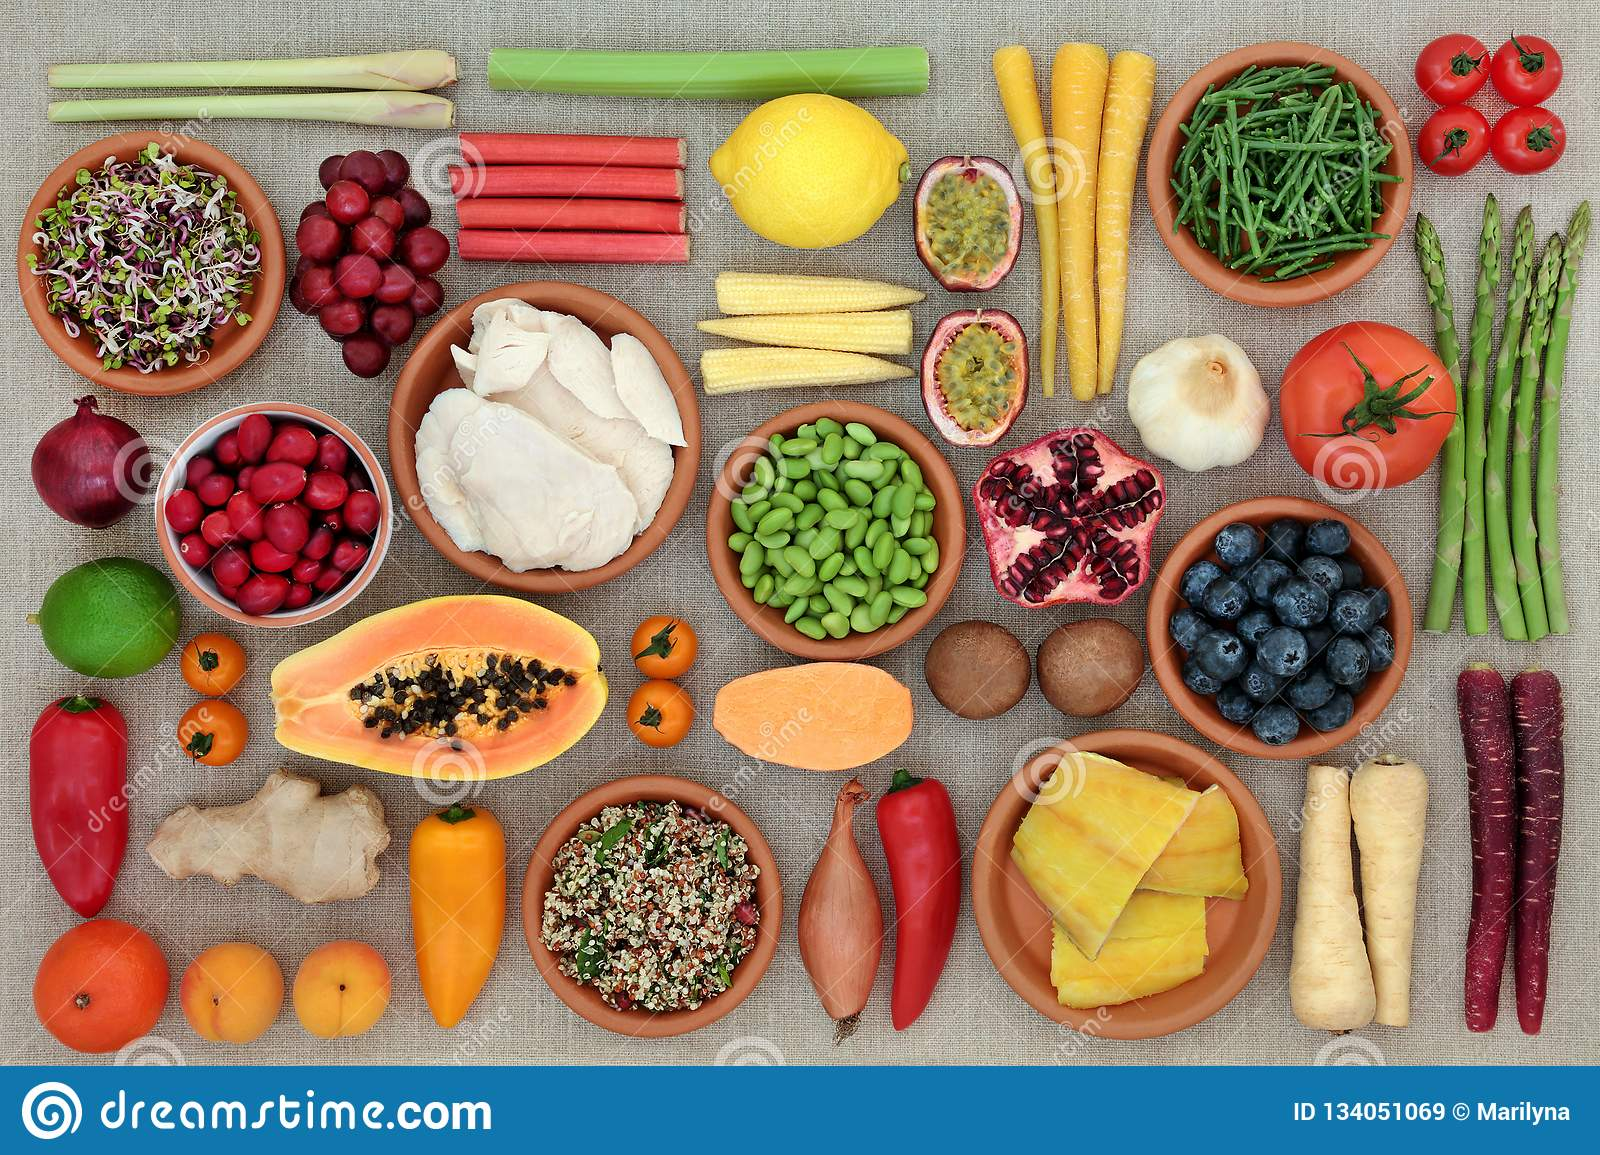 Super Food for Fitness